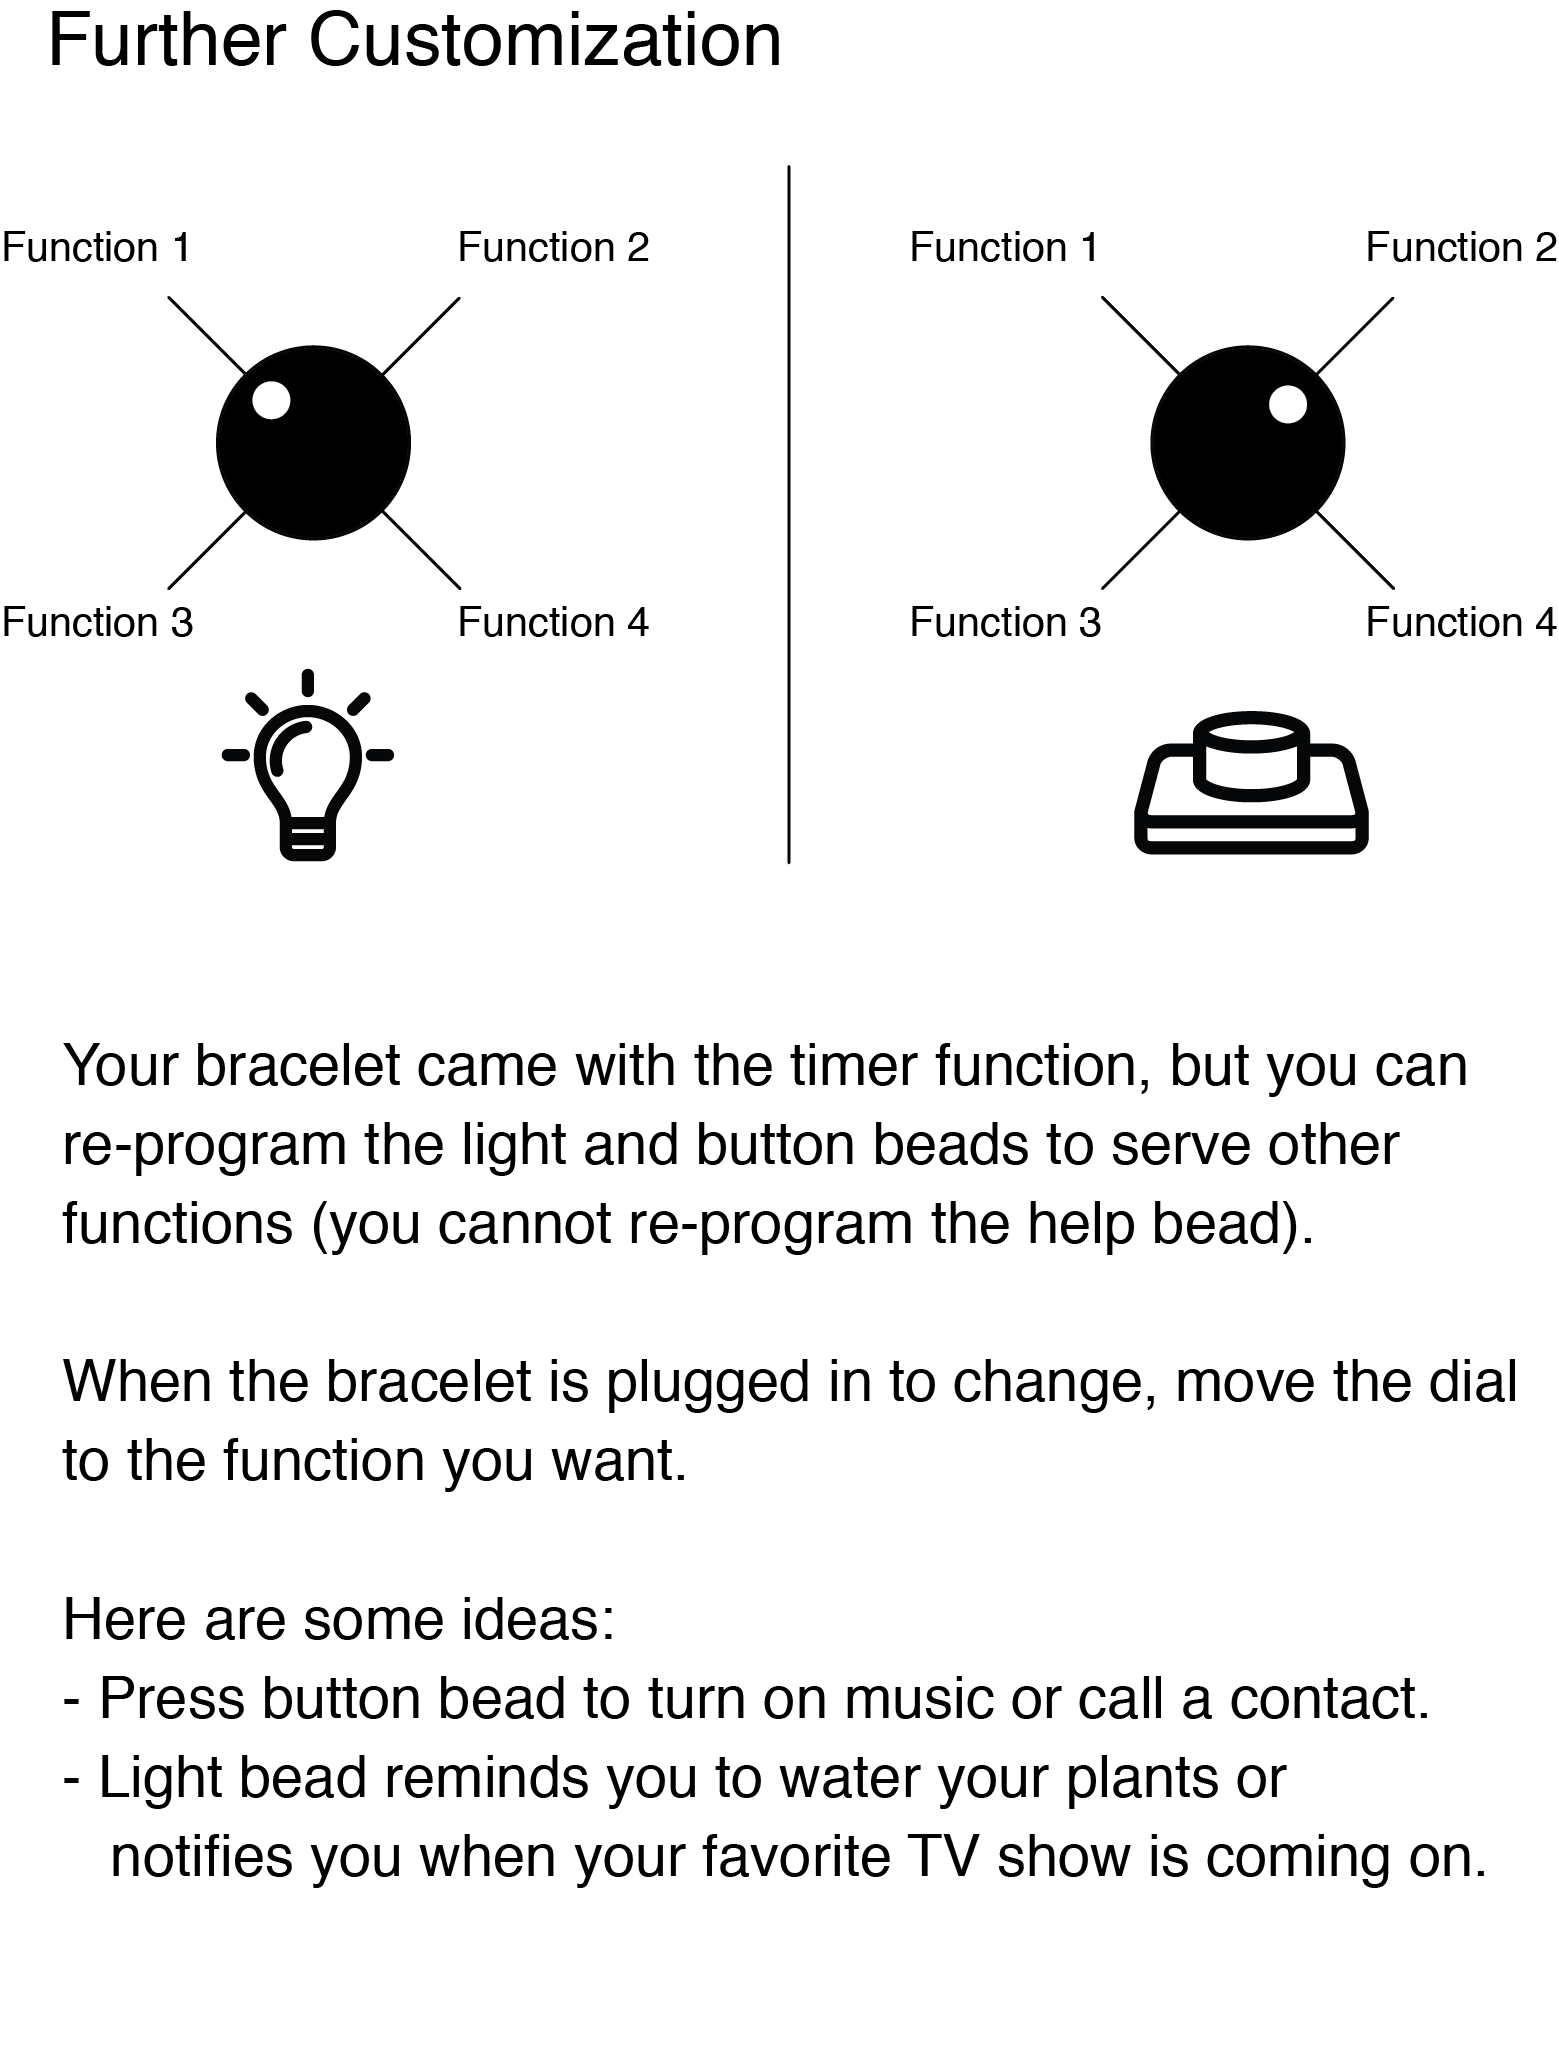 extensioninstructions.png